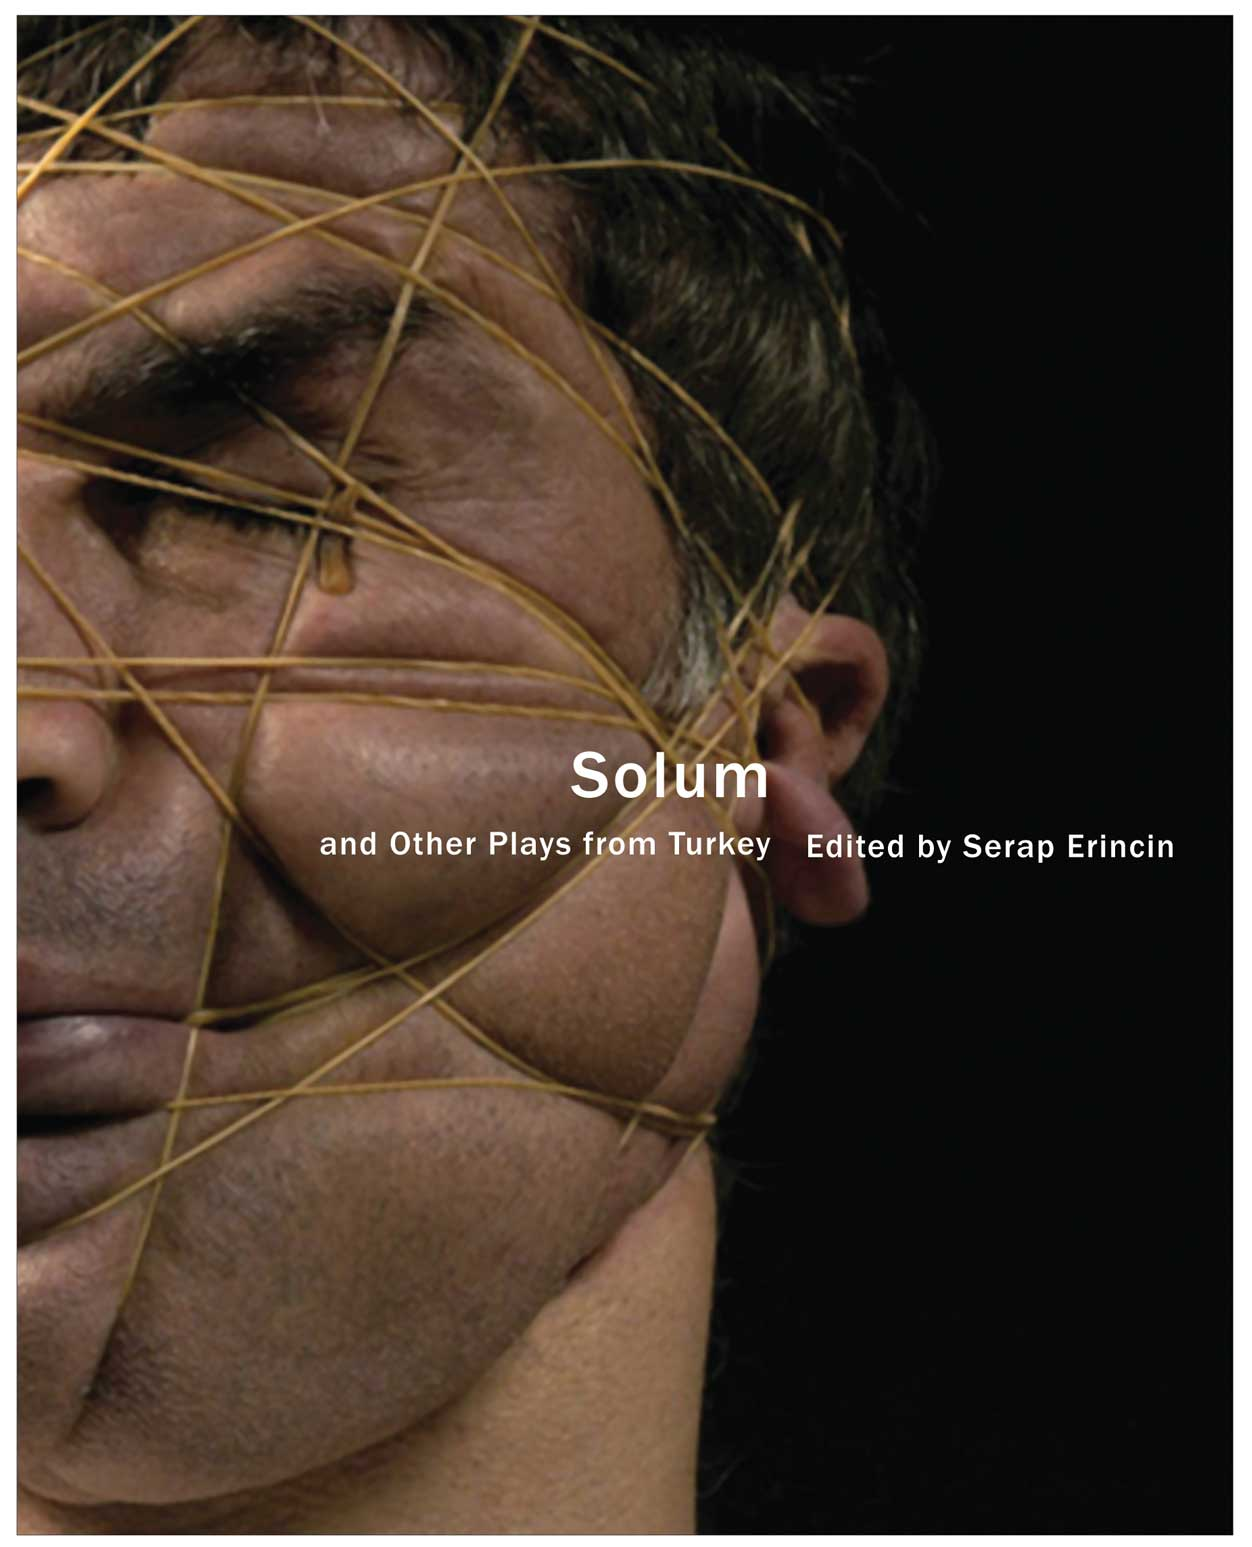 Solum: and Other Plays from Turkey by Serap Erincin |  Seagull Books